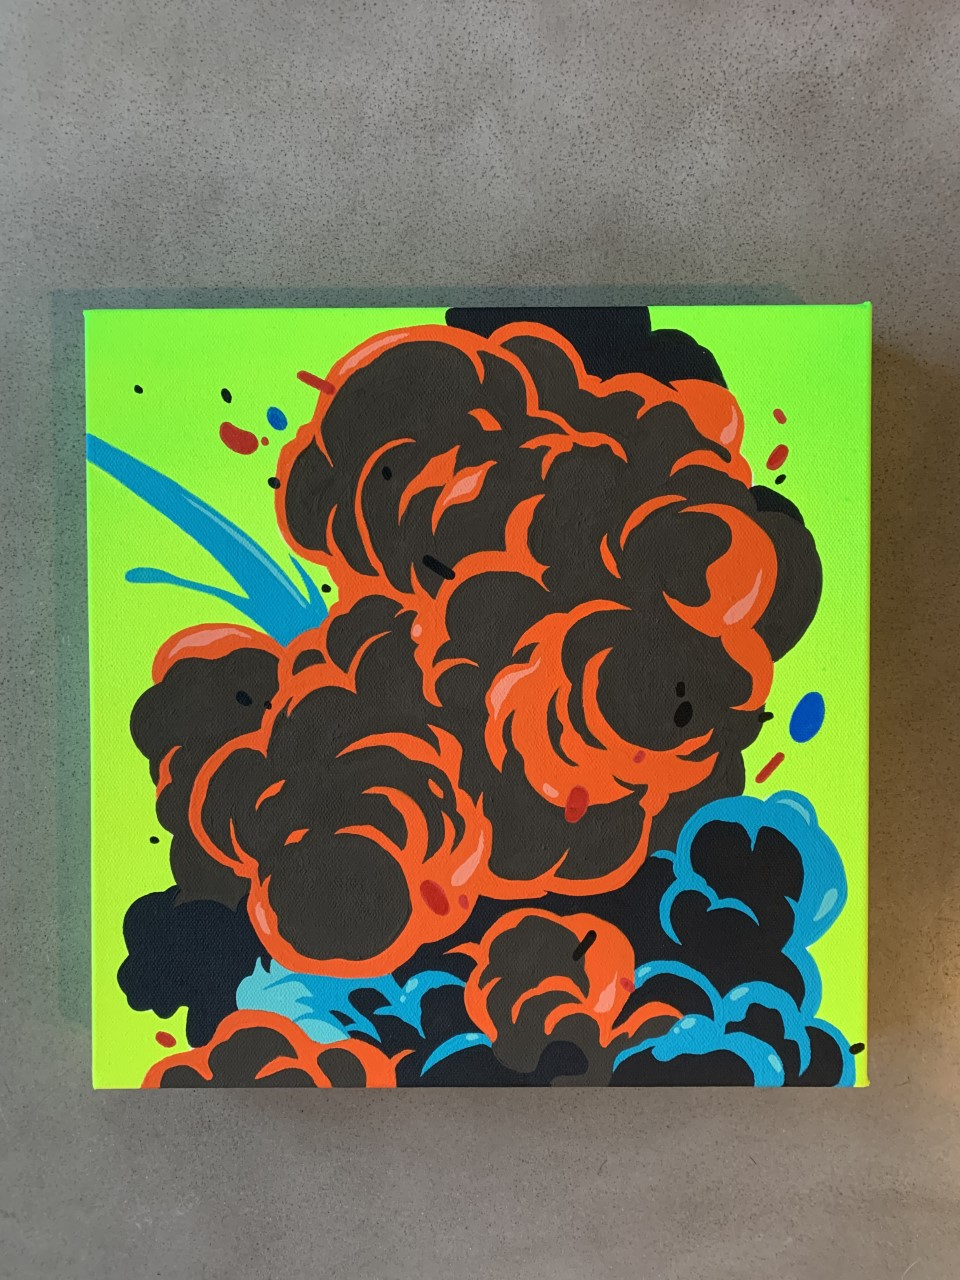 'Chemical', 12x12' Gallery Wrapped Canvas by Nover, 2020.